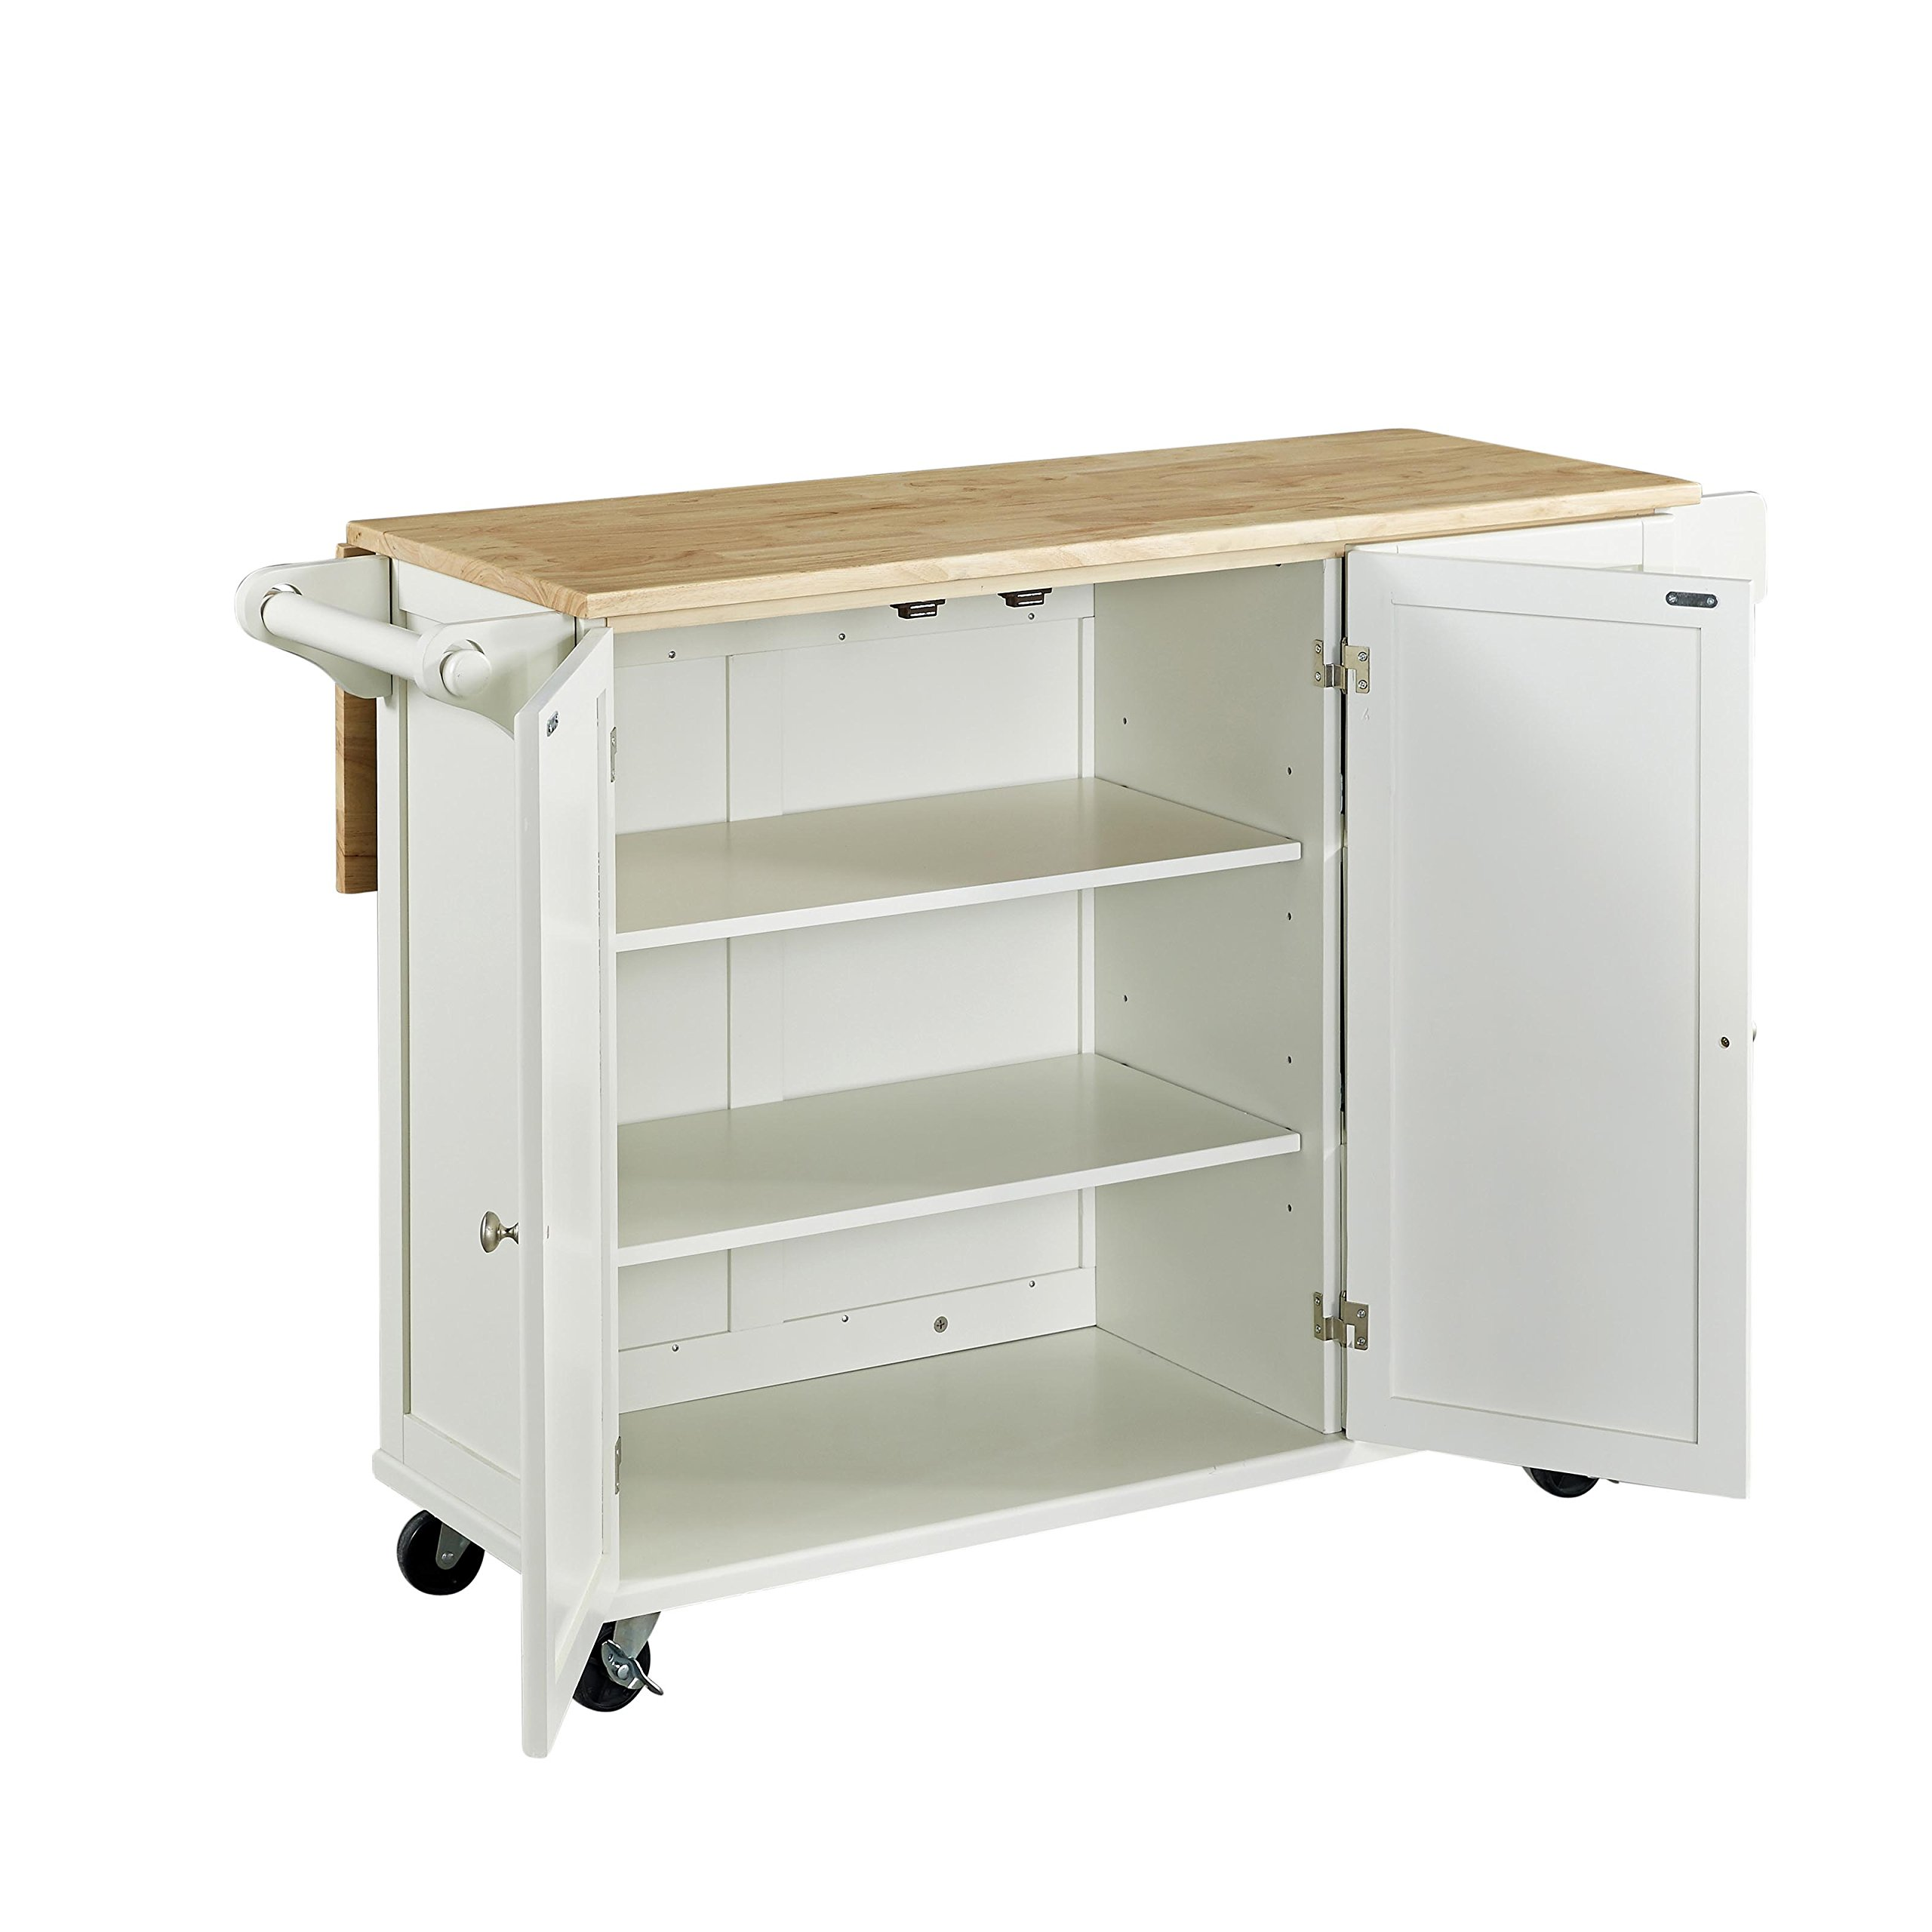 Home Styles 4511-95 Liberty Kitchen Cart with Wood Top, White by Home Styles (Image #9)